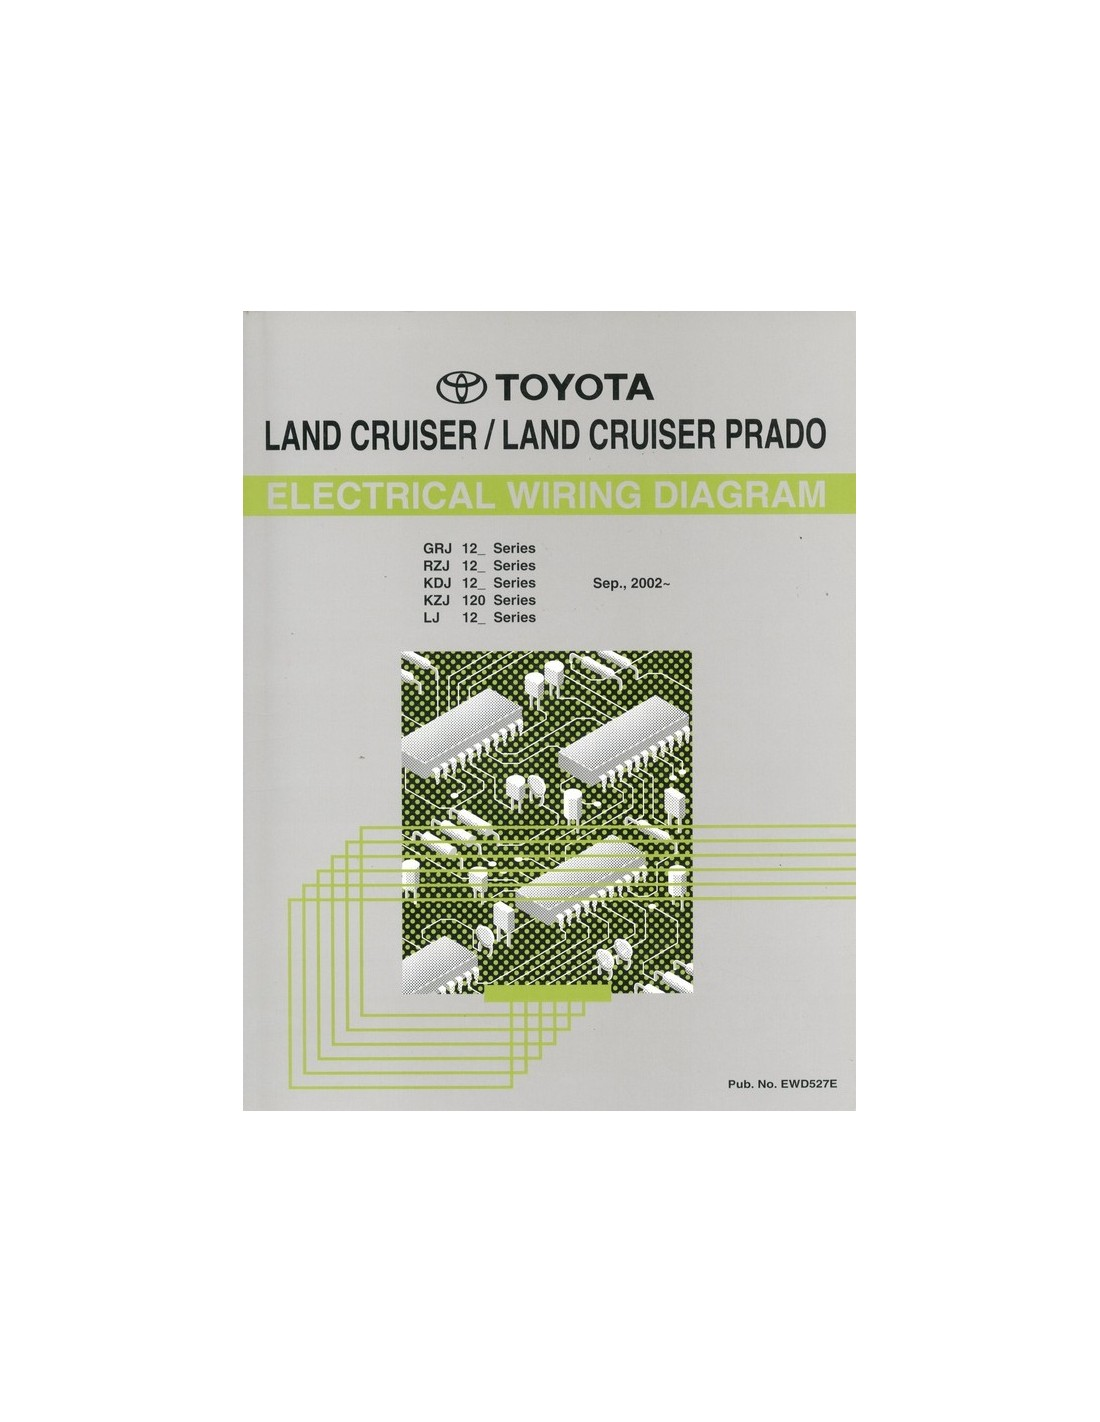 2002 toyota landcruiser prado electrical wiring diagram workshop toyota ignition wiring diagram 2002 toyota landcruiser prado electrische schema's werkplaatshandboek engels